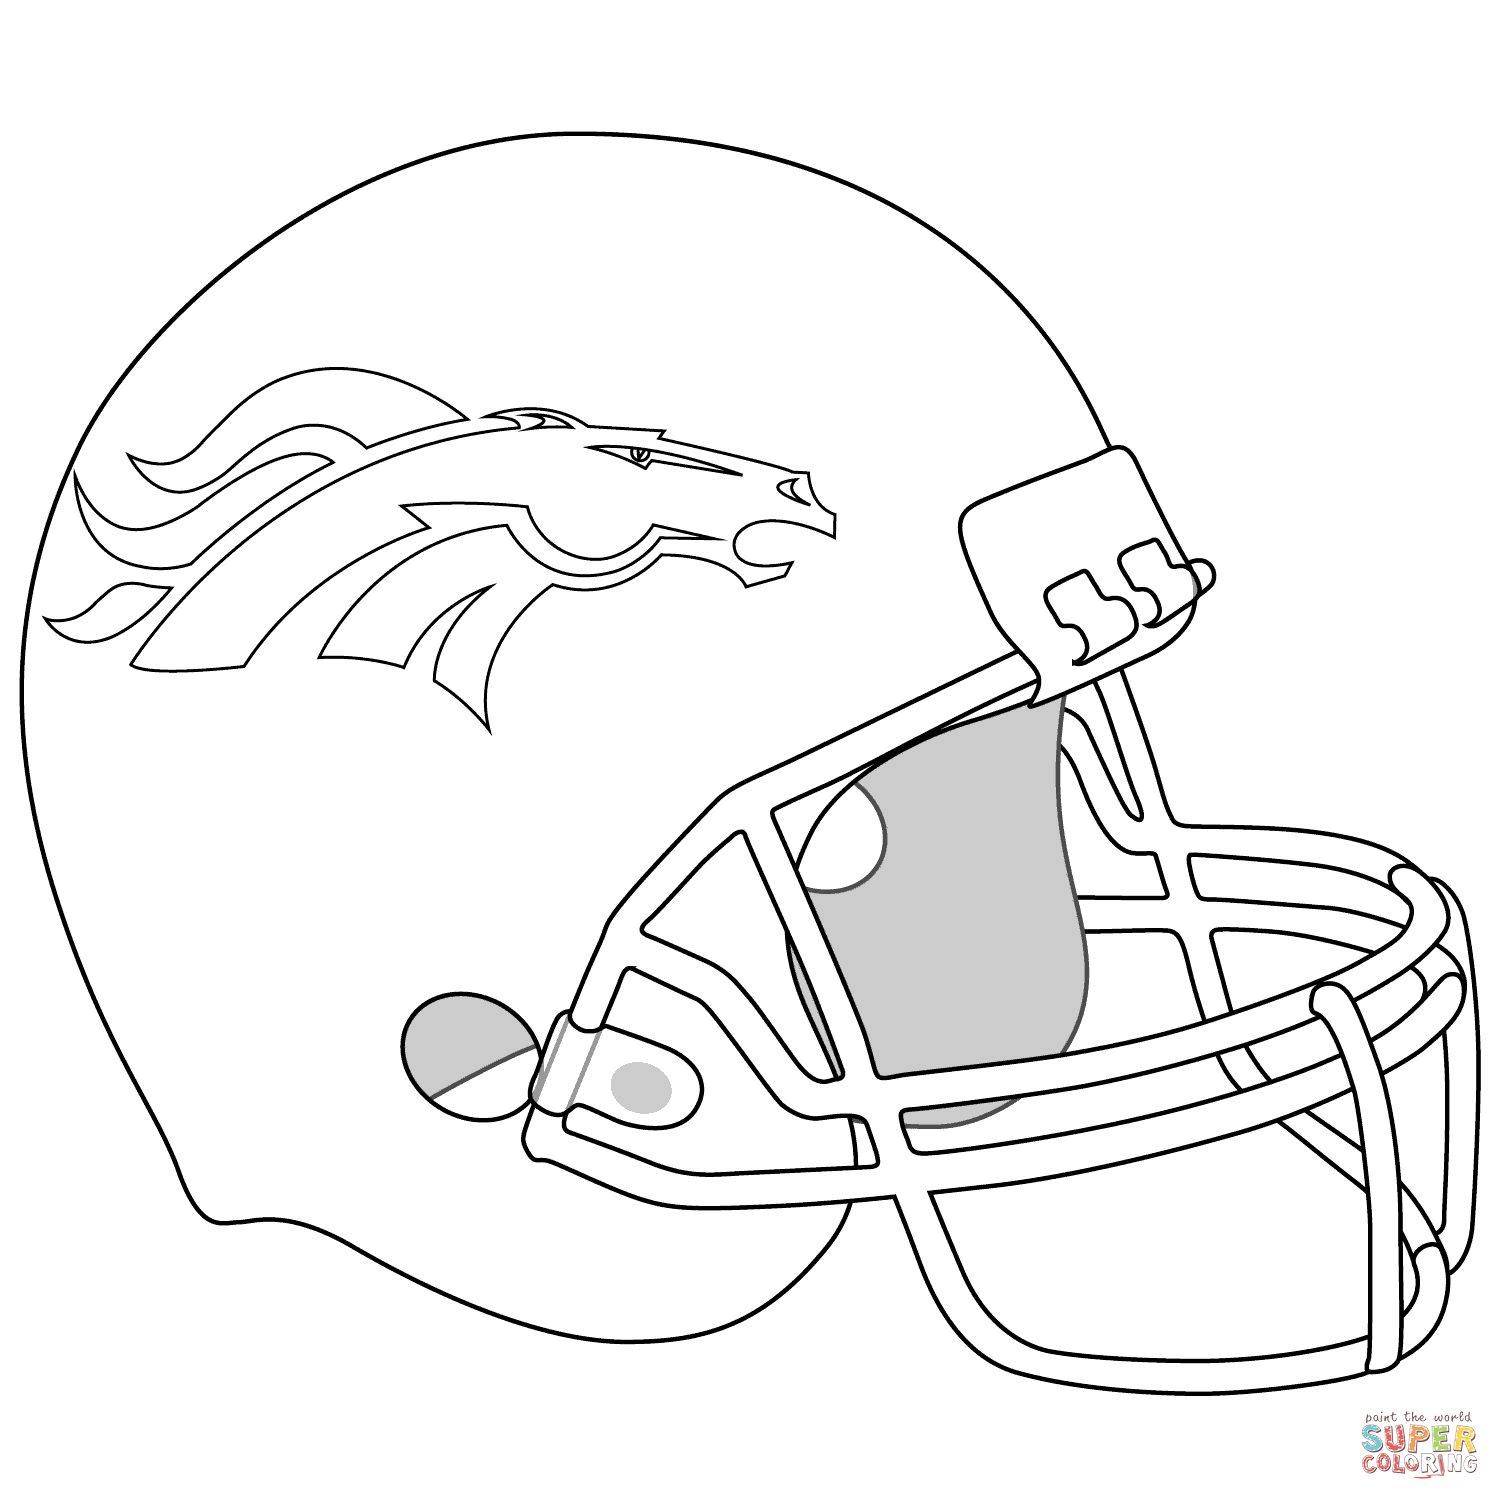 Football Helmets Drawing at GetDrawingscom Free for personal use